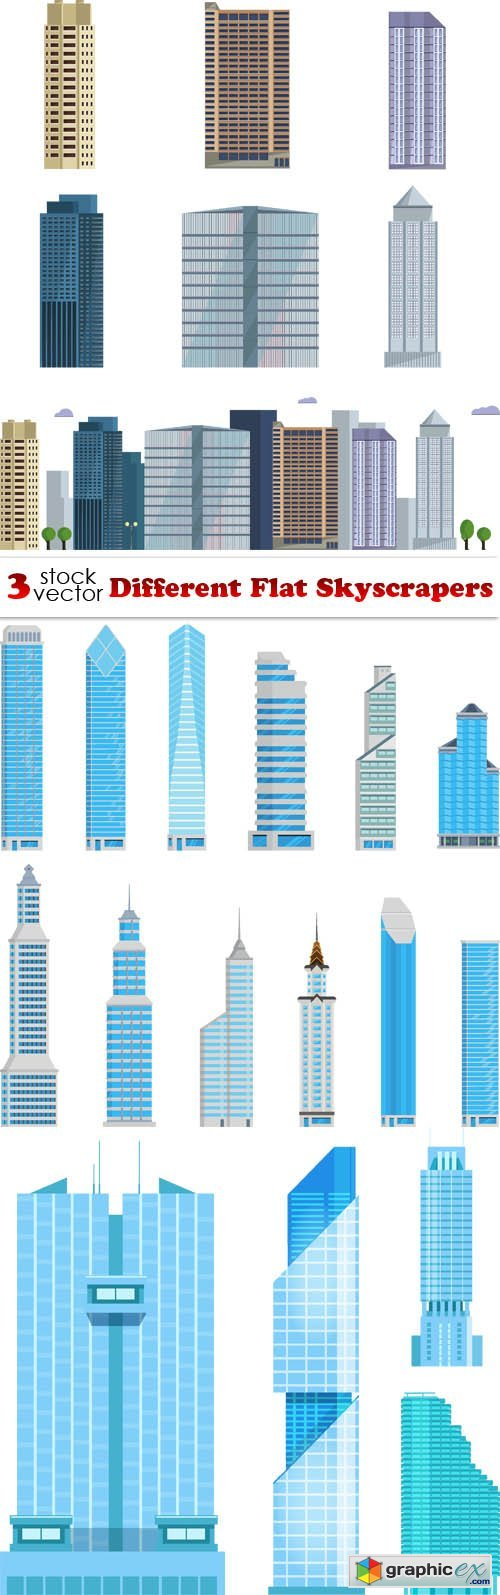 Different Flat Skyscrapers